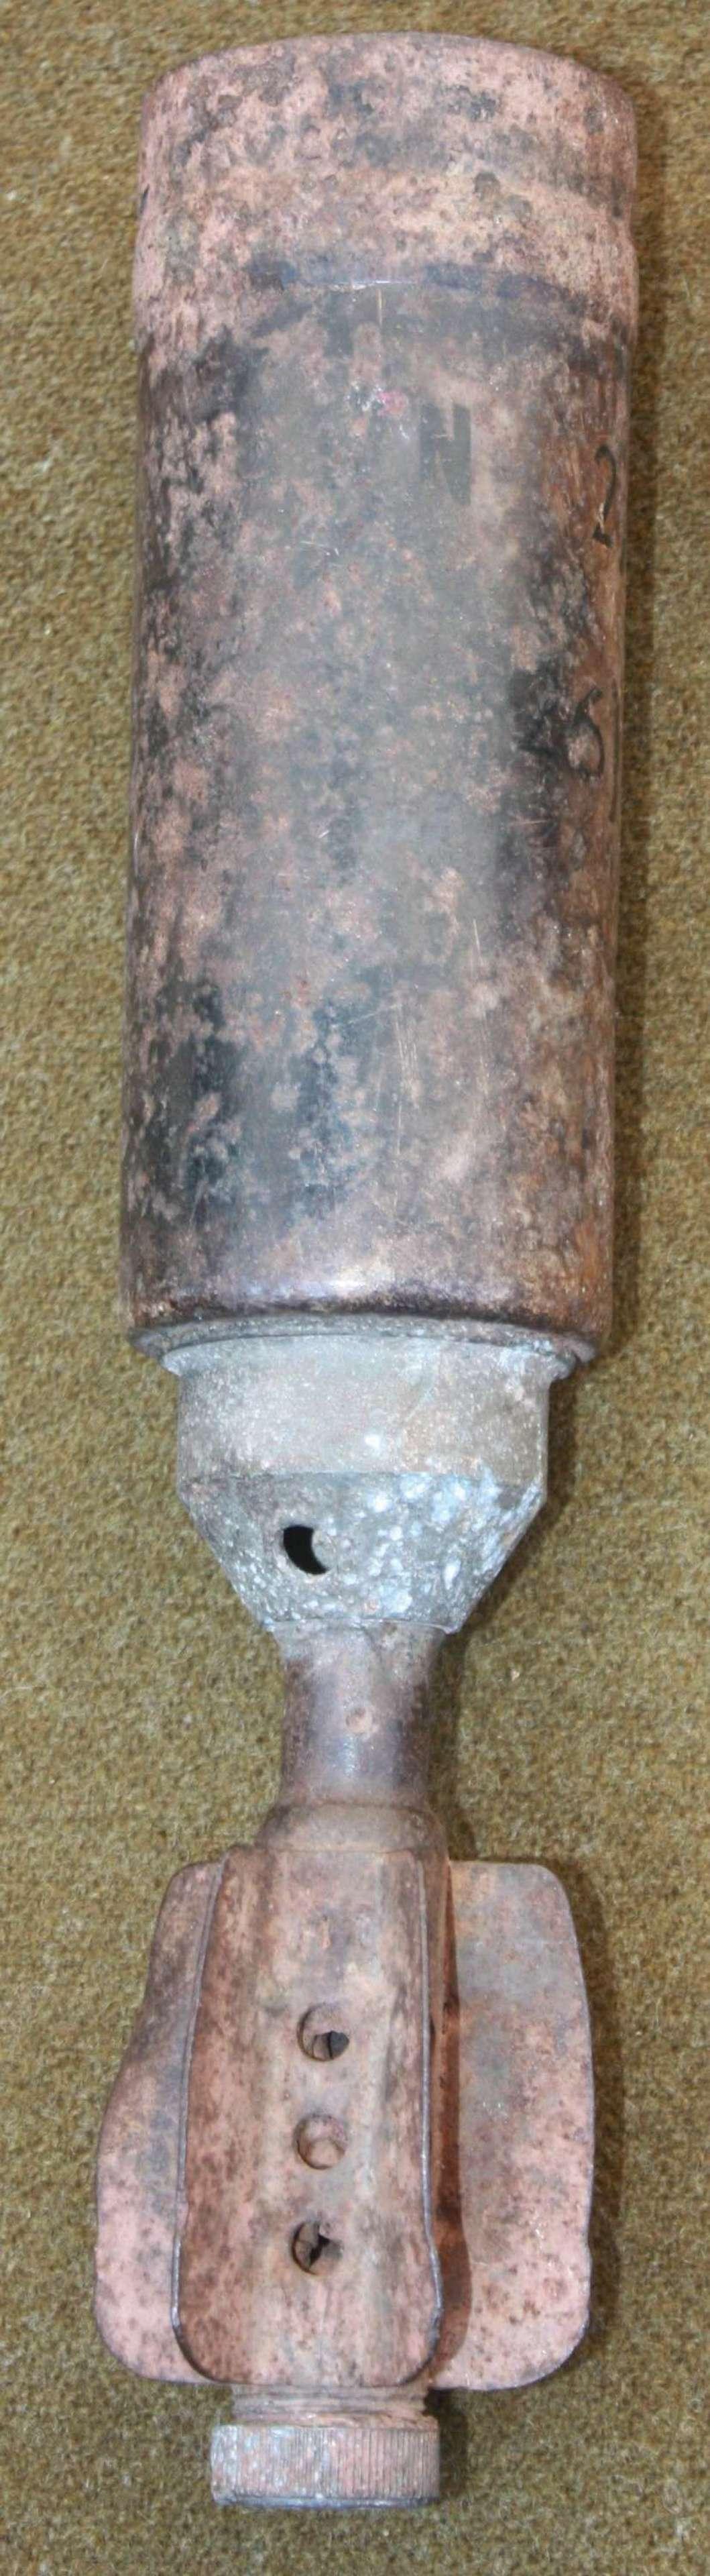 A POST WWII 1950'S 2 INCH MORTOR ROUND